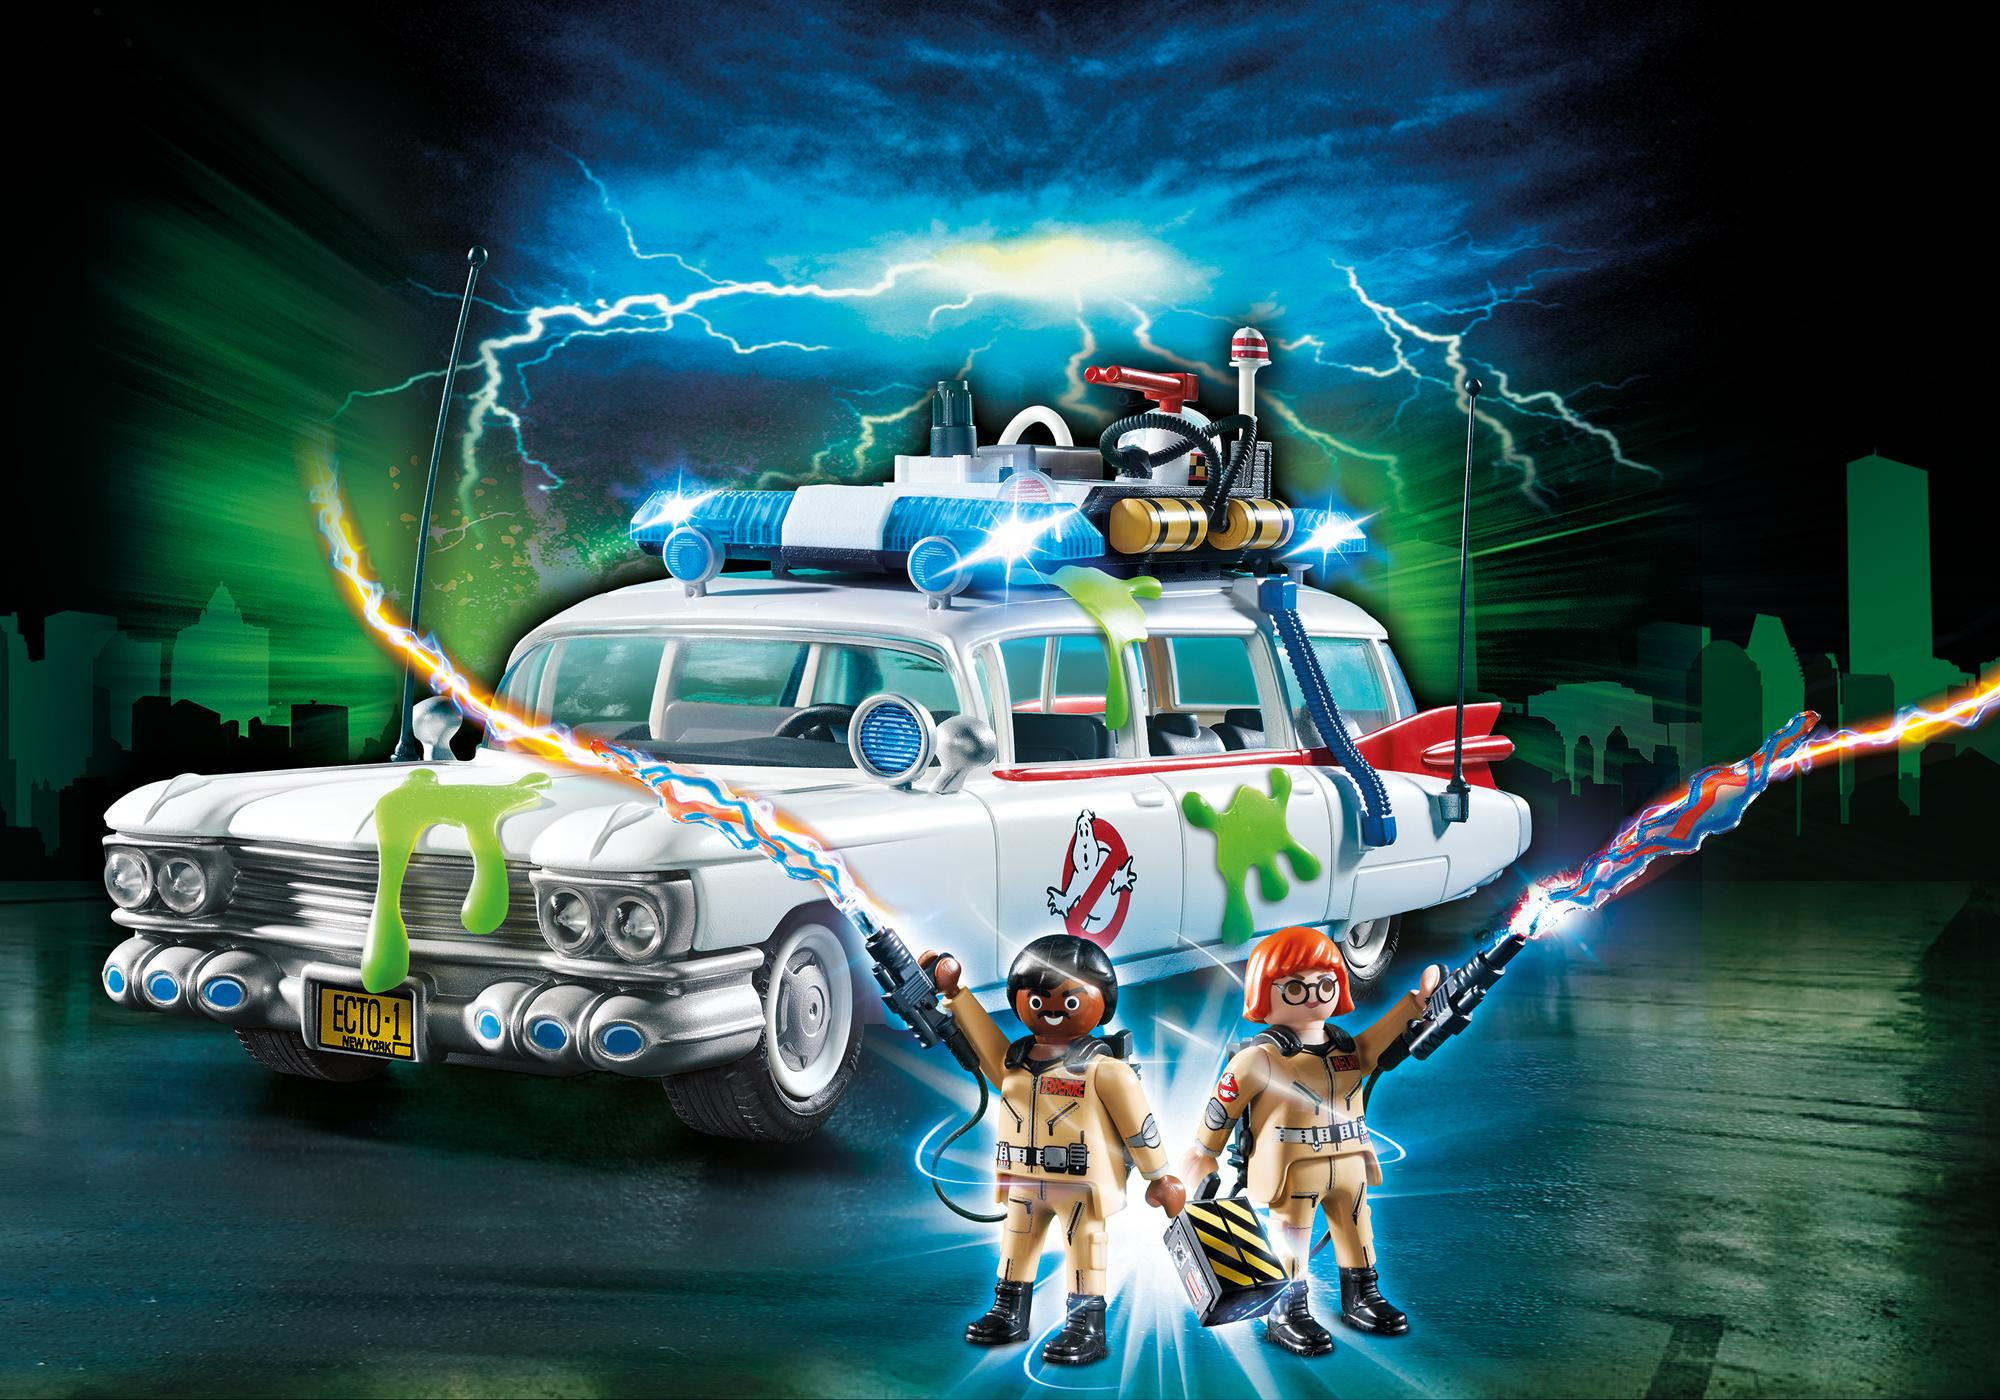 http://media.playmobil.com/i/playmobil/9220_product_detail/Ghostbusters Ecto-1